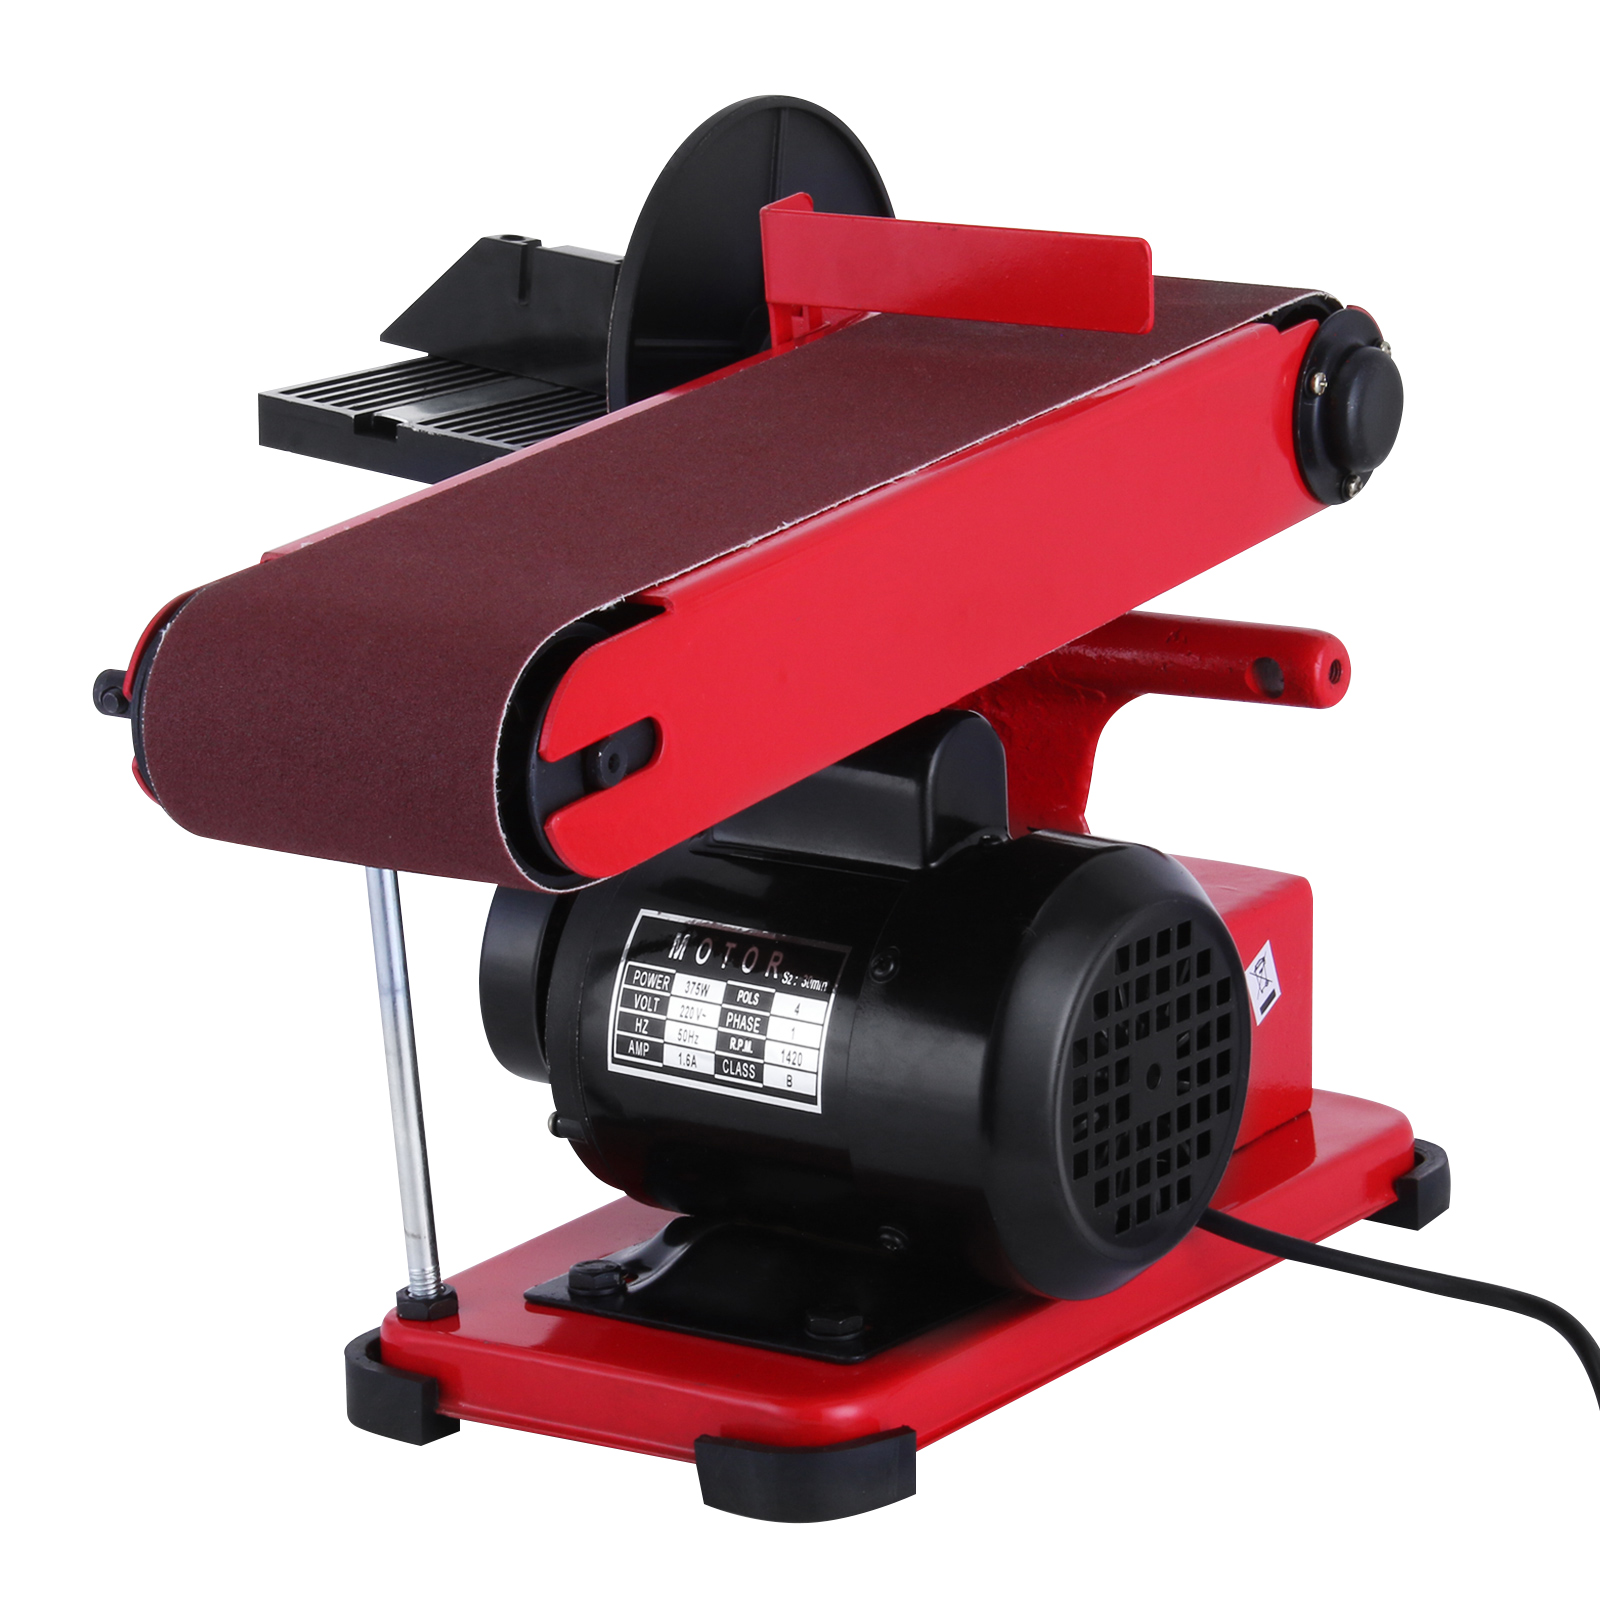 375w bench belt and disc sander grinder adjustable tilt aluminum frame linisher ebay Bench belt sander